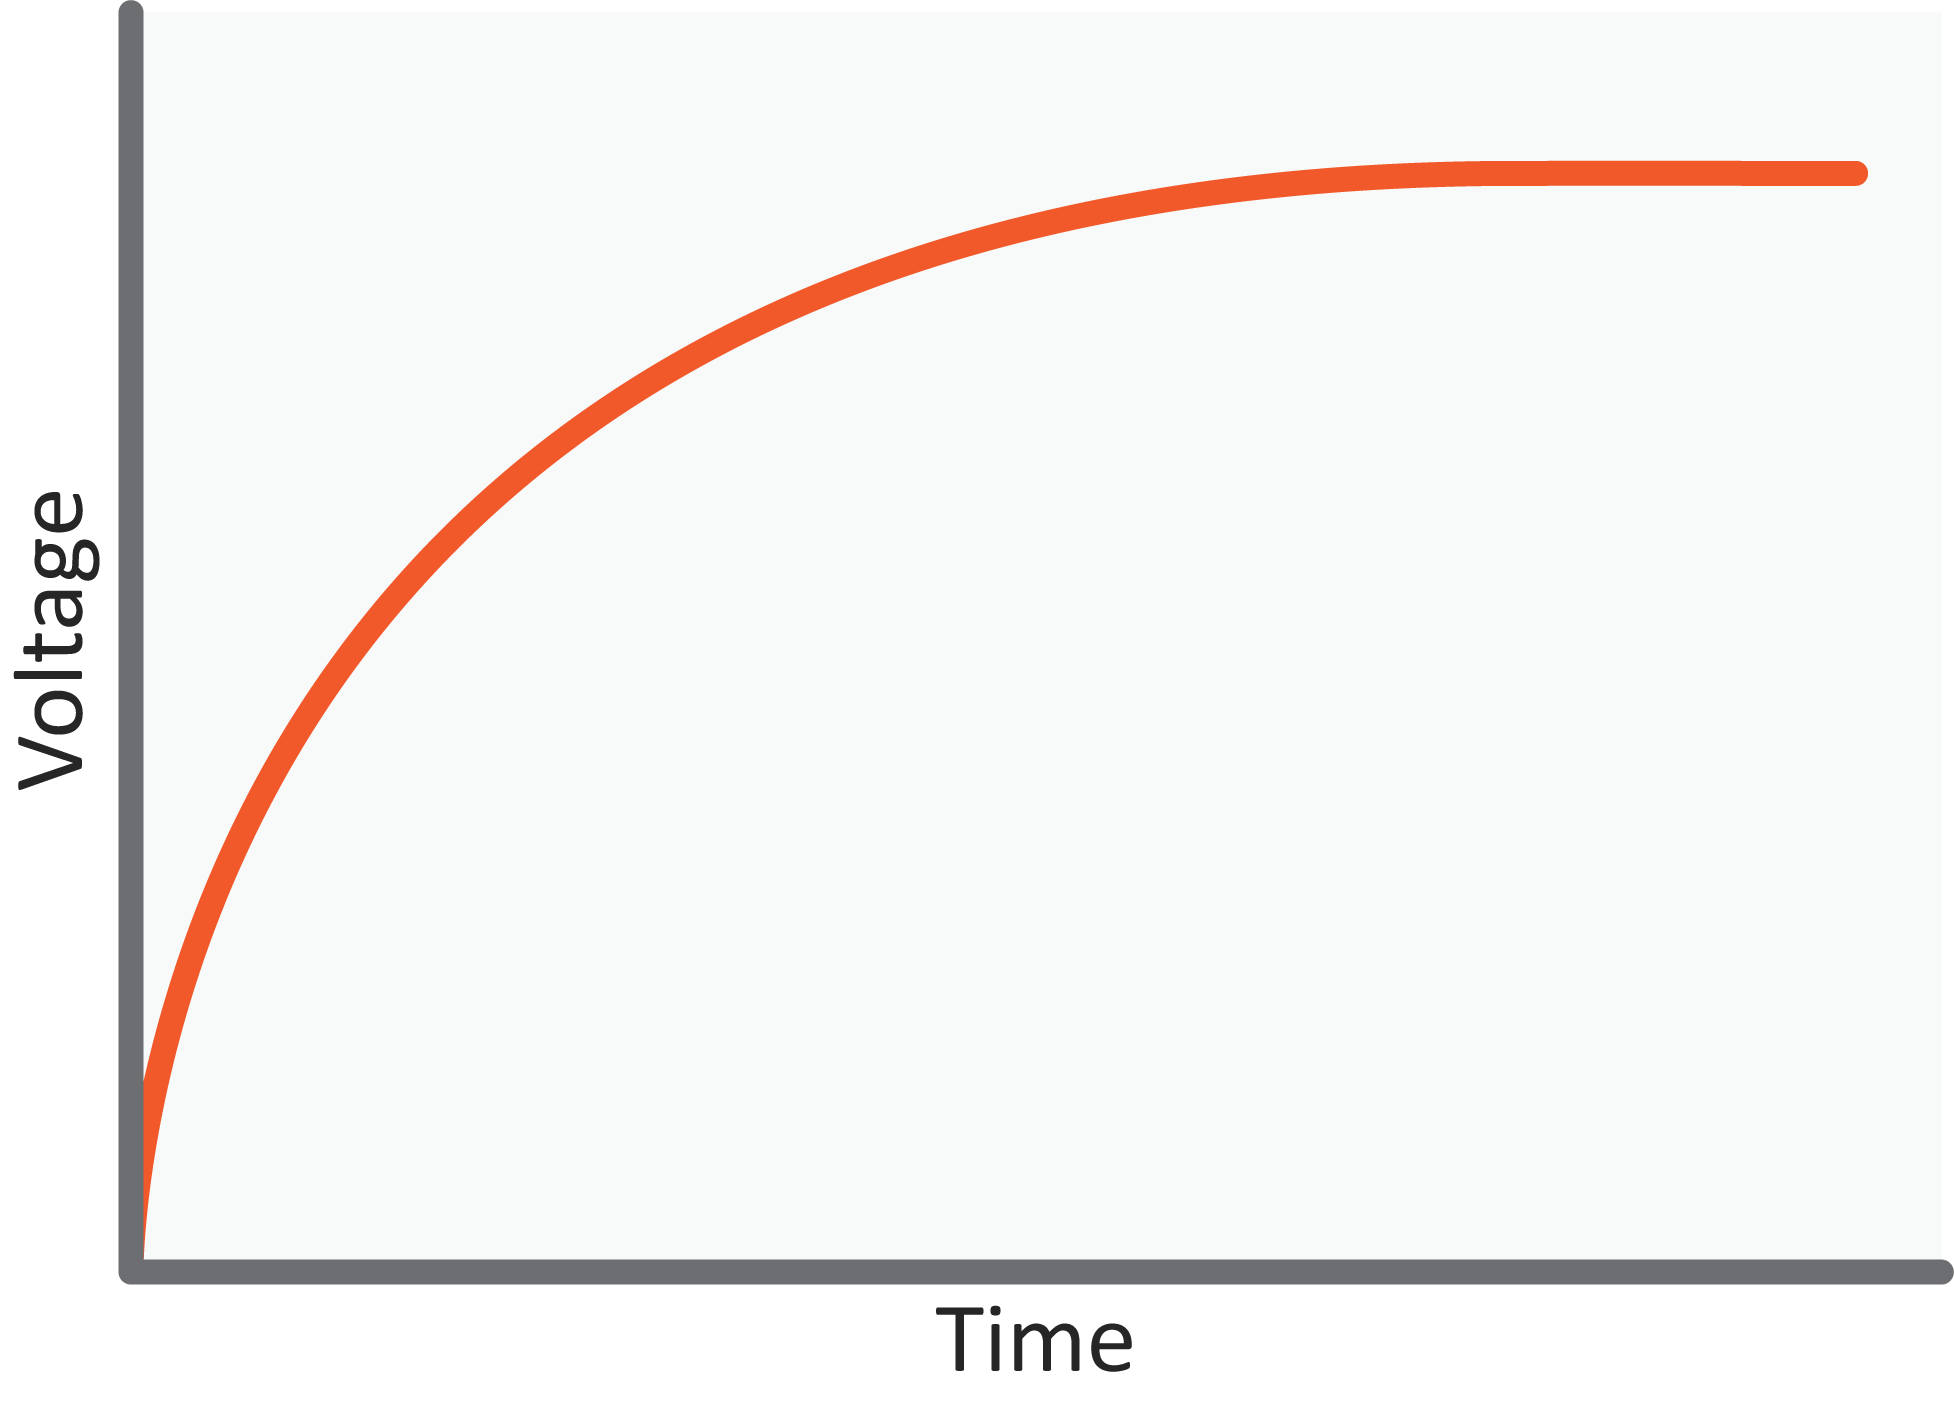 Resistor-Capacitor Charging Curve (Voltage)